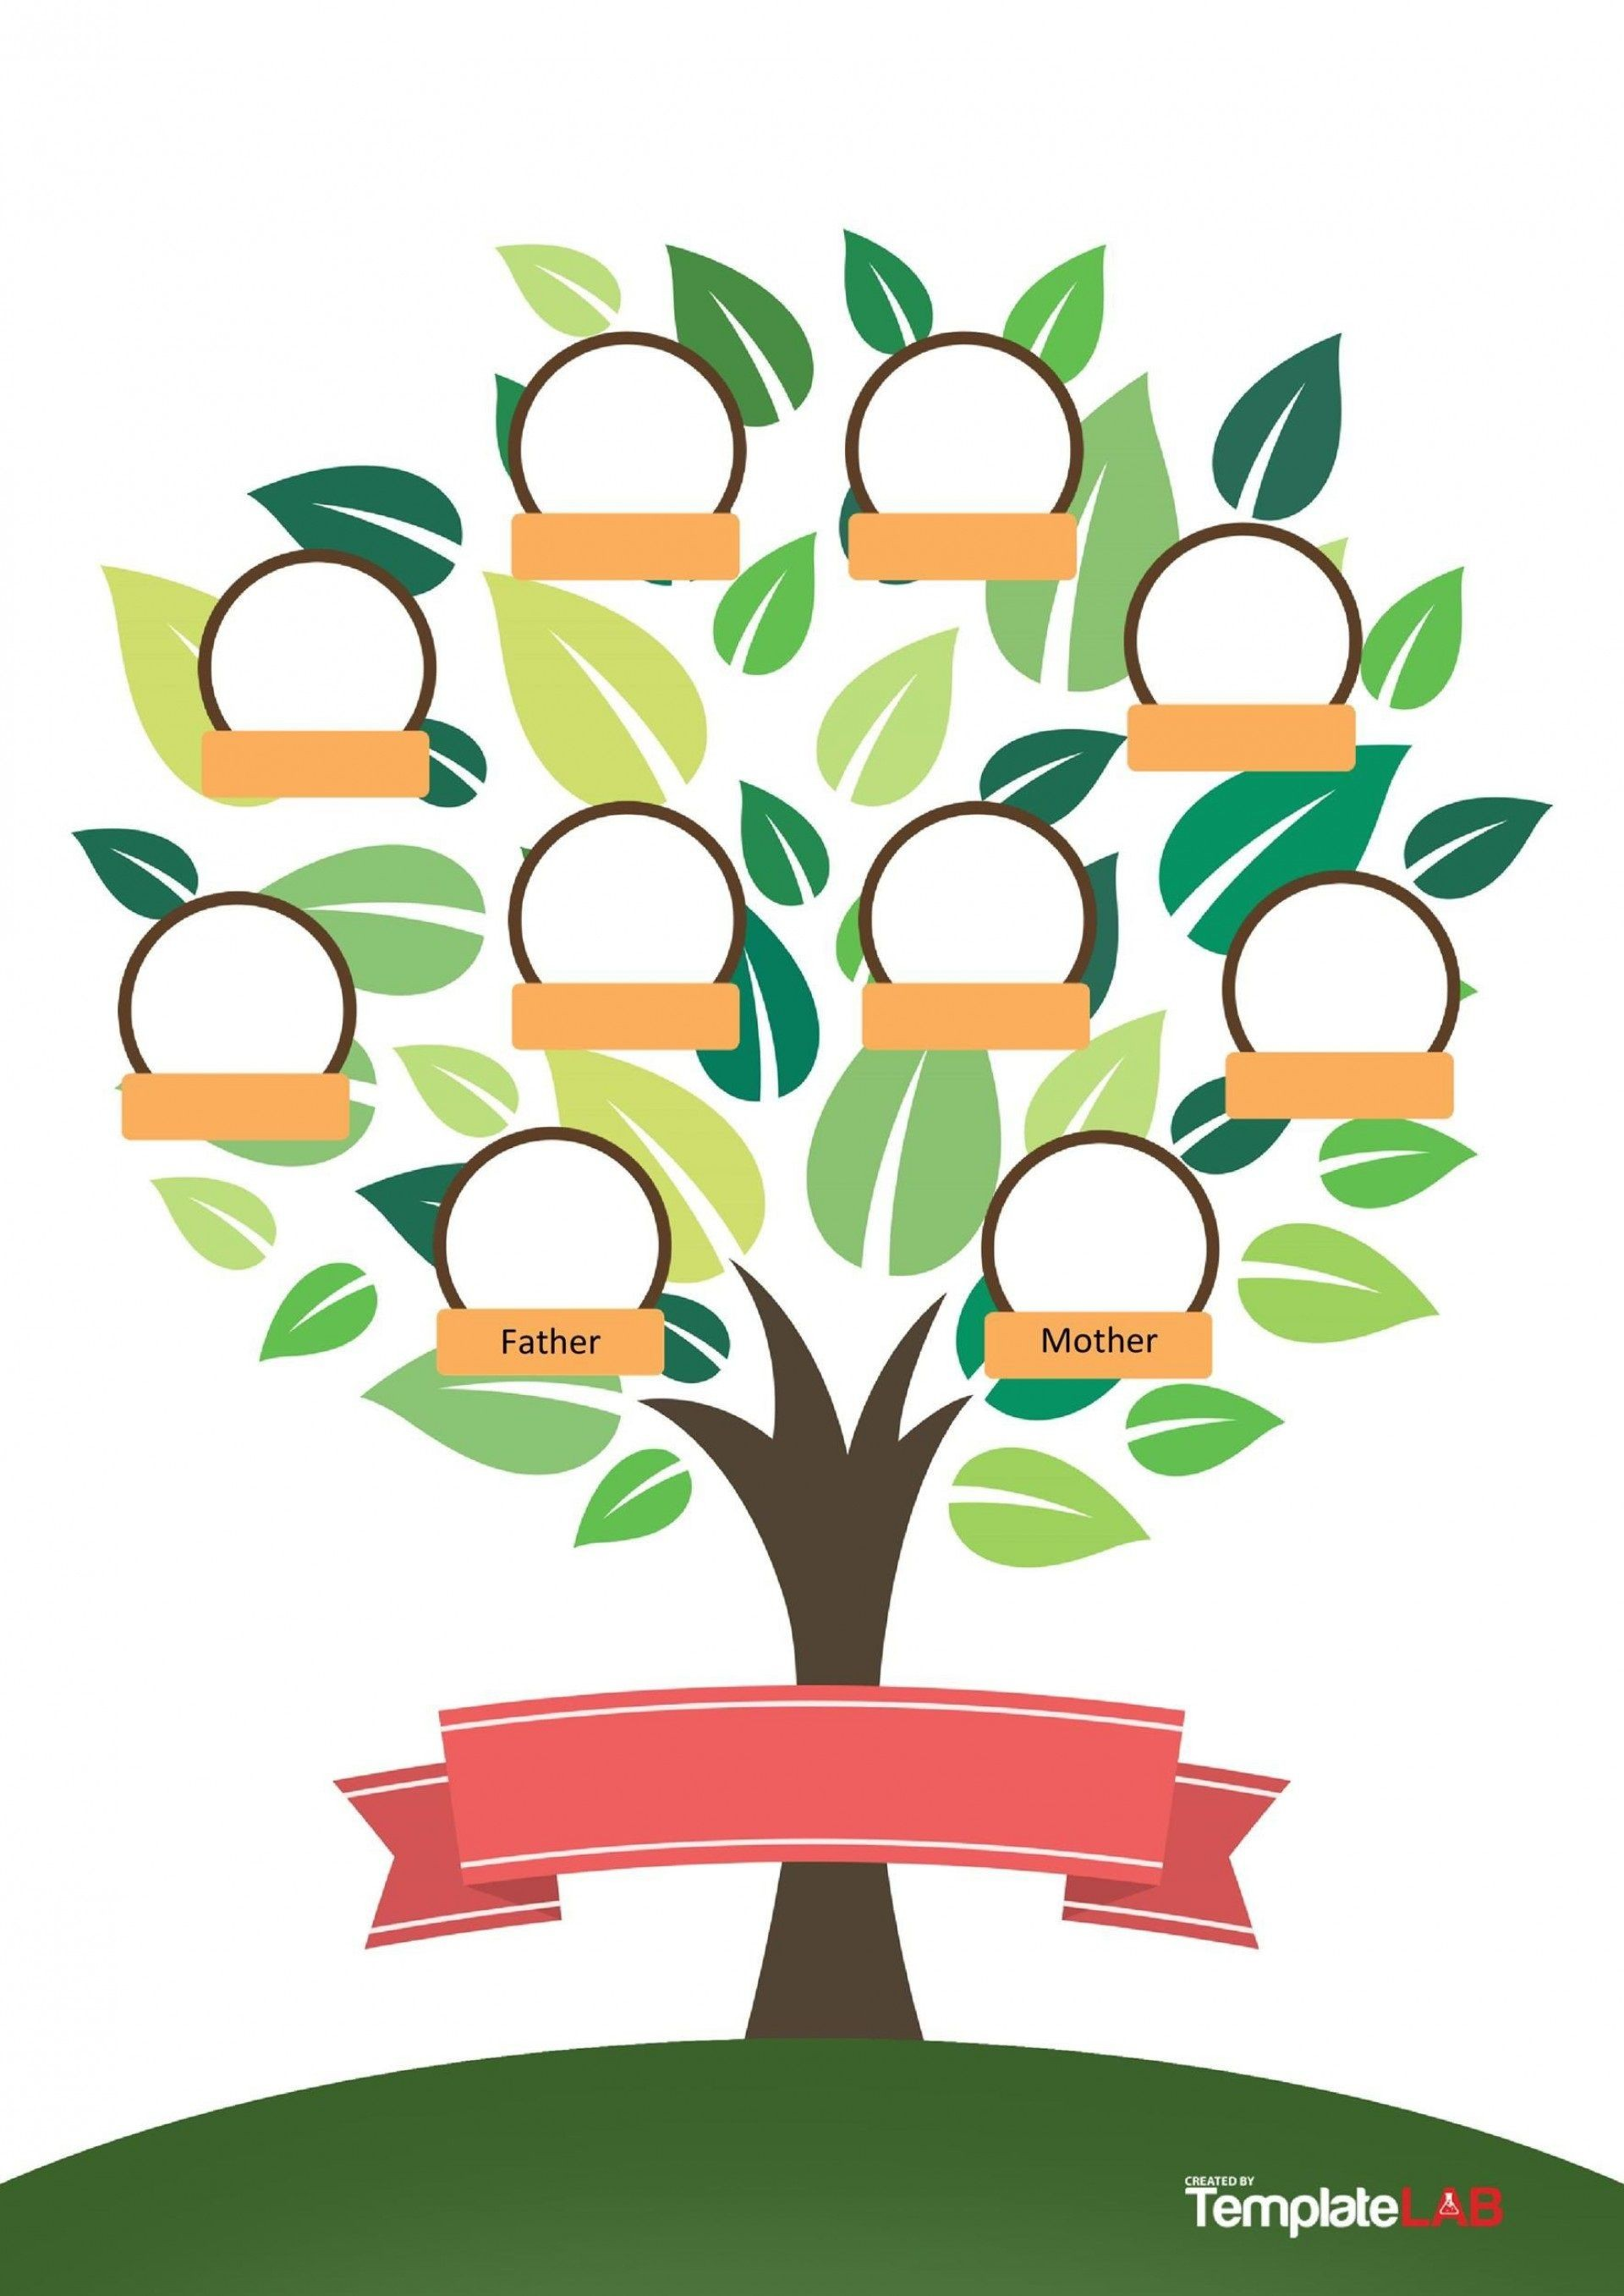 003 Unforgettable Free Editable Family Tree Template For Mac Picture 1920